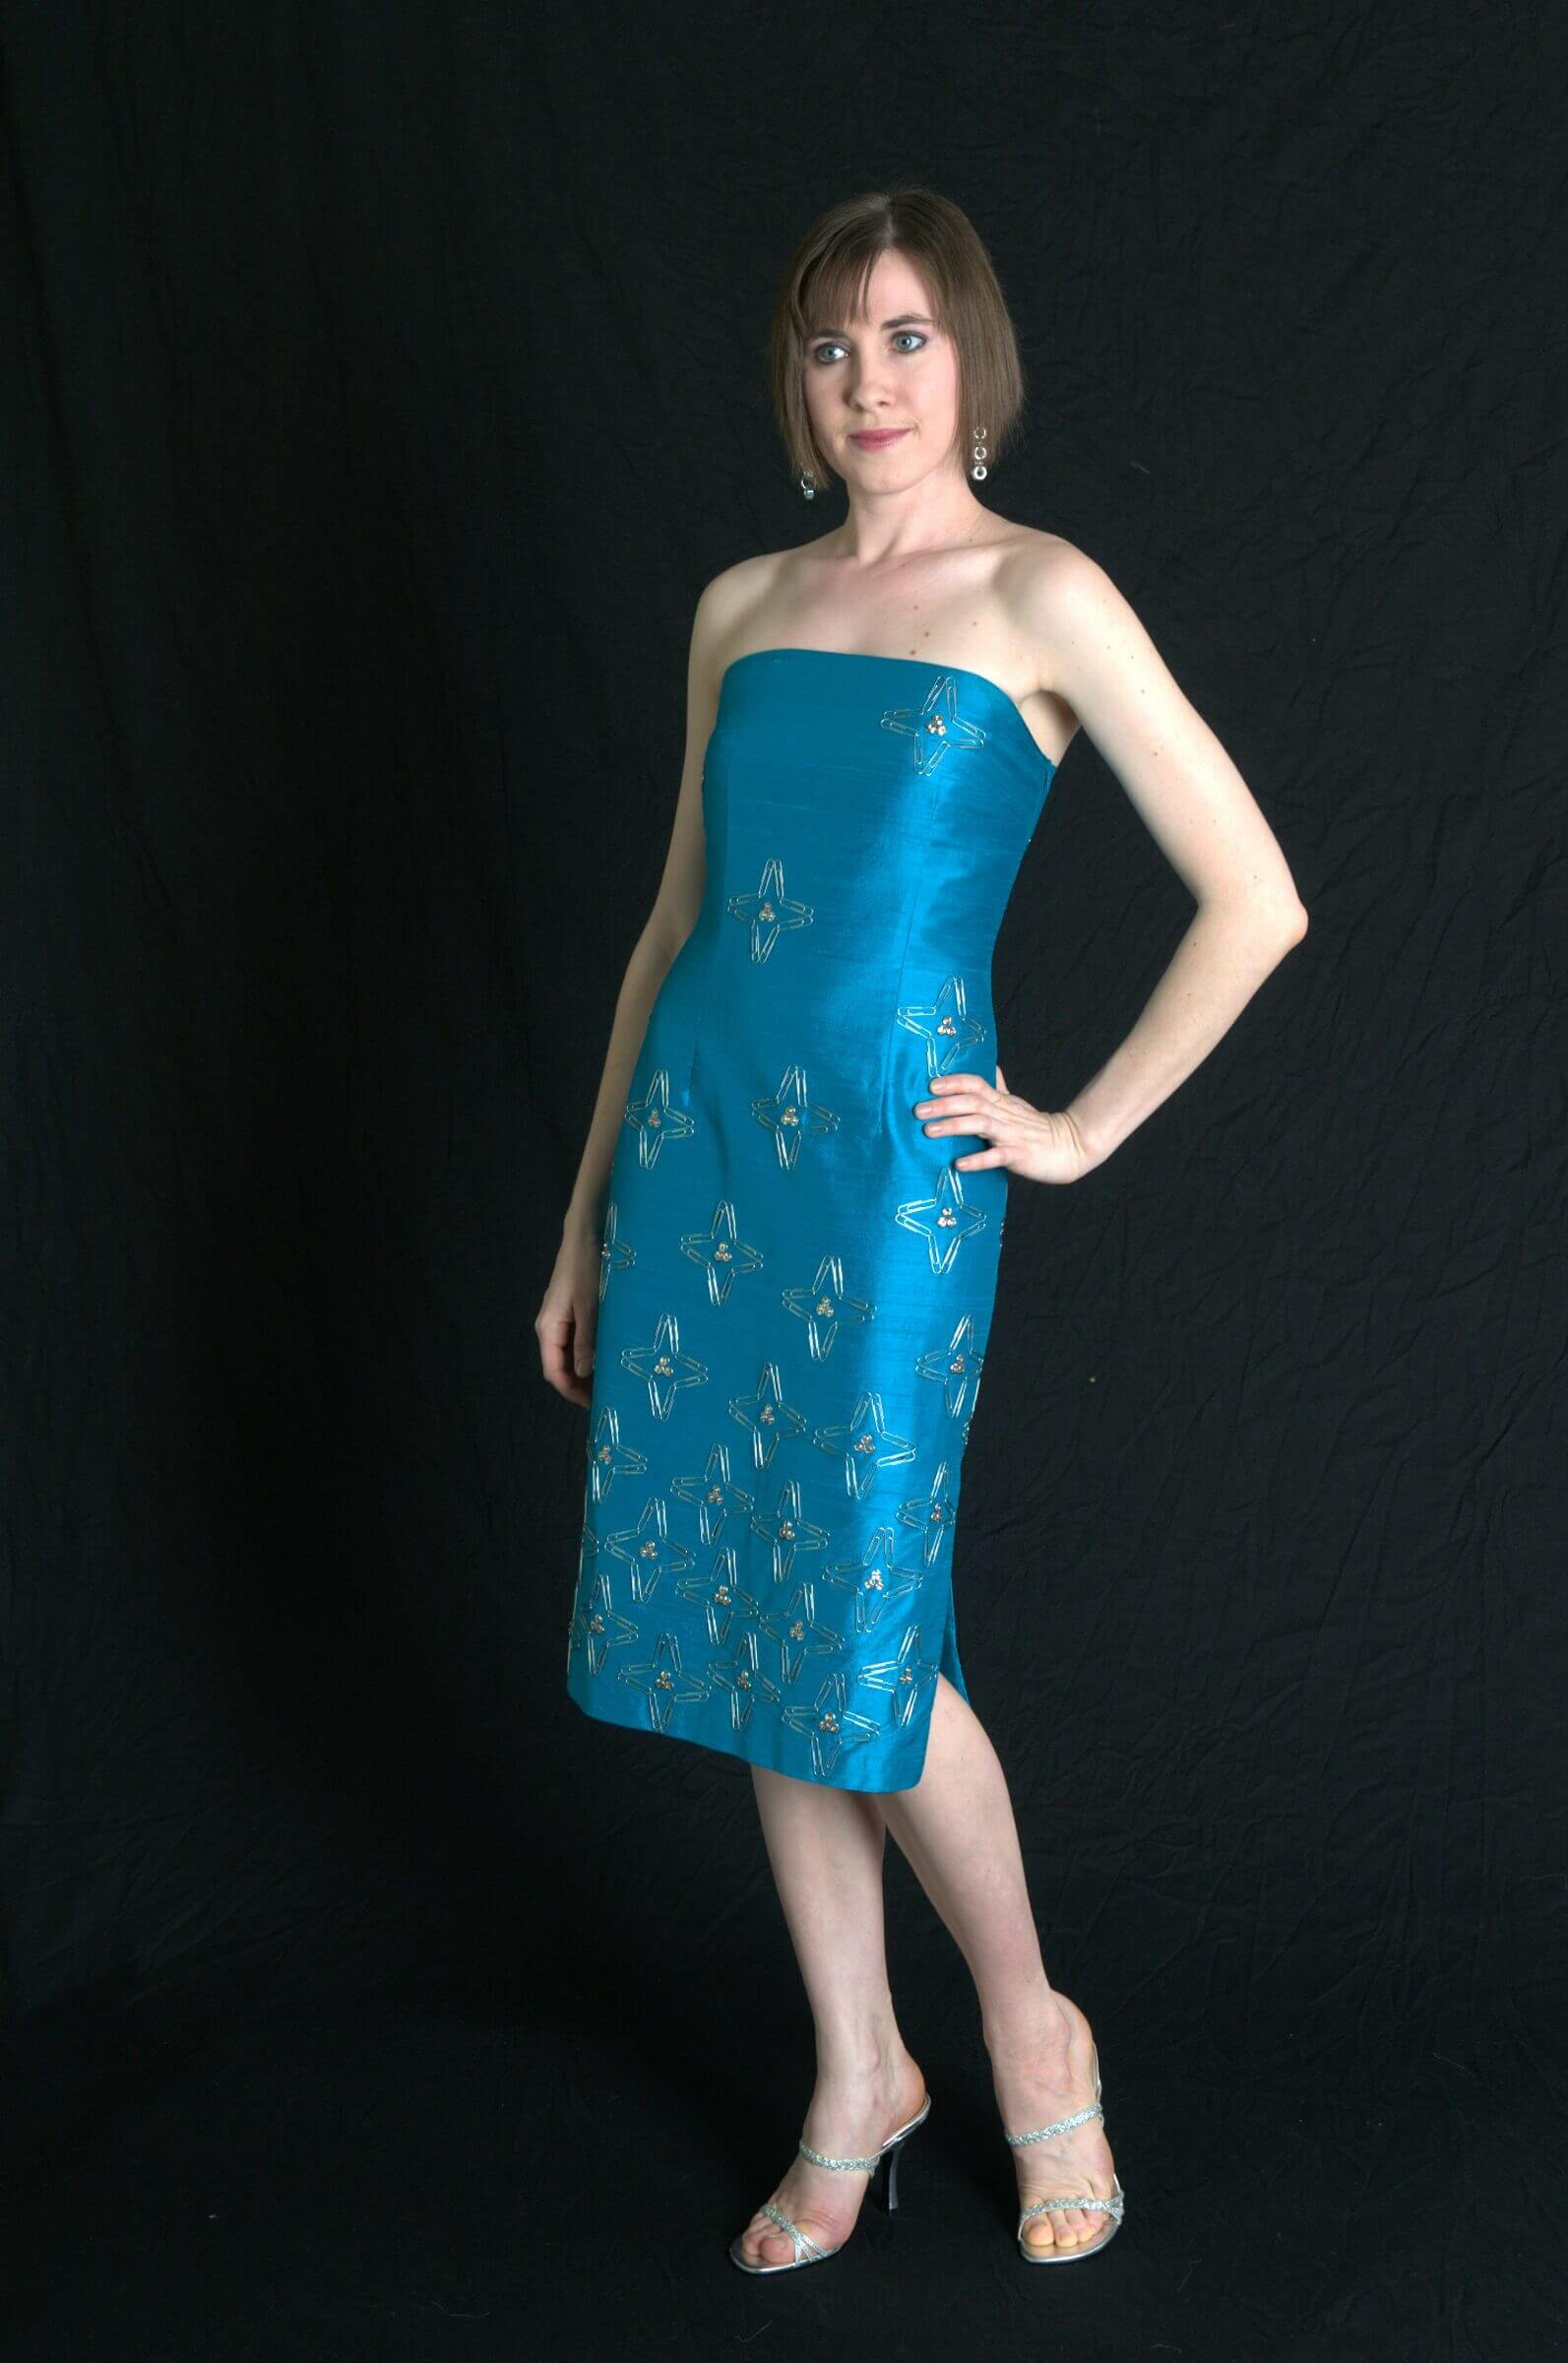 Evening wear cocktail dress with Paperclip Embellishments by Rebecca Wendlandt